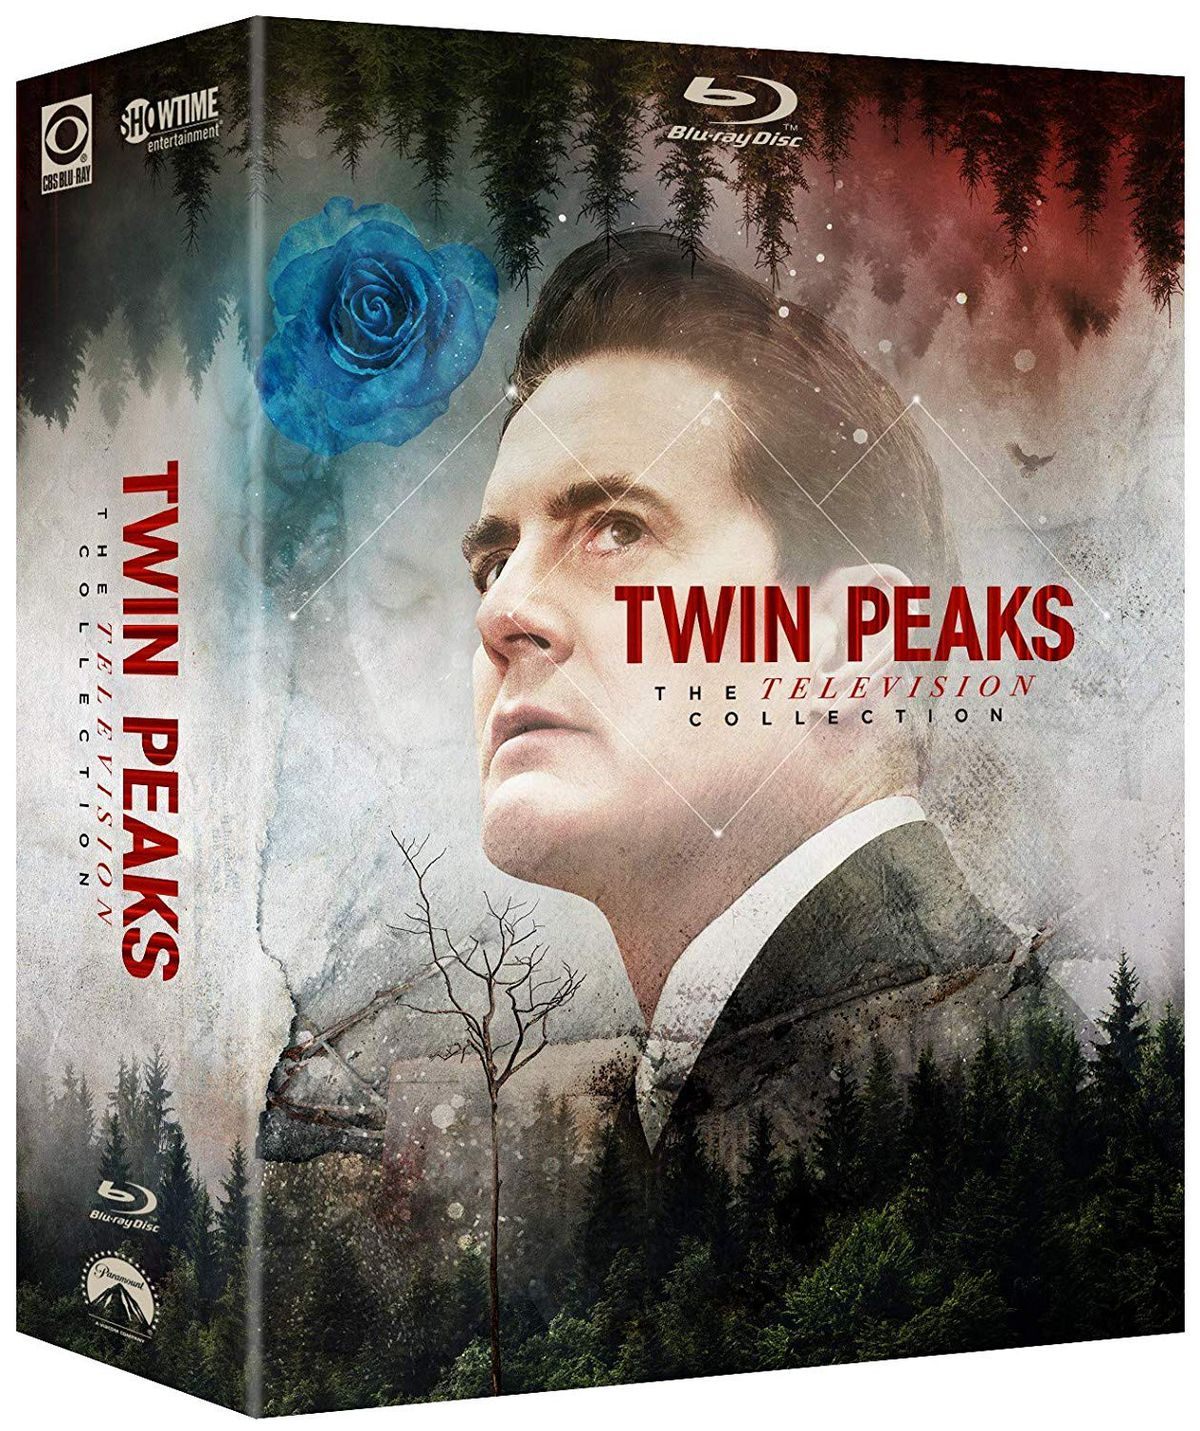 A product shot of Twin Peaks: The Television Collection